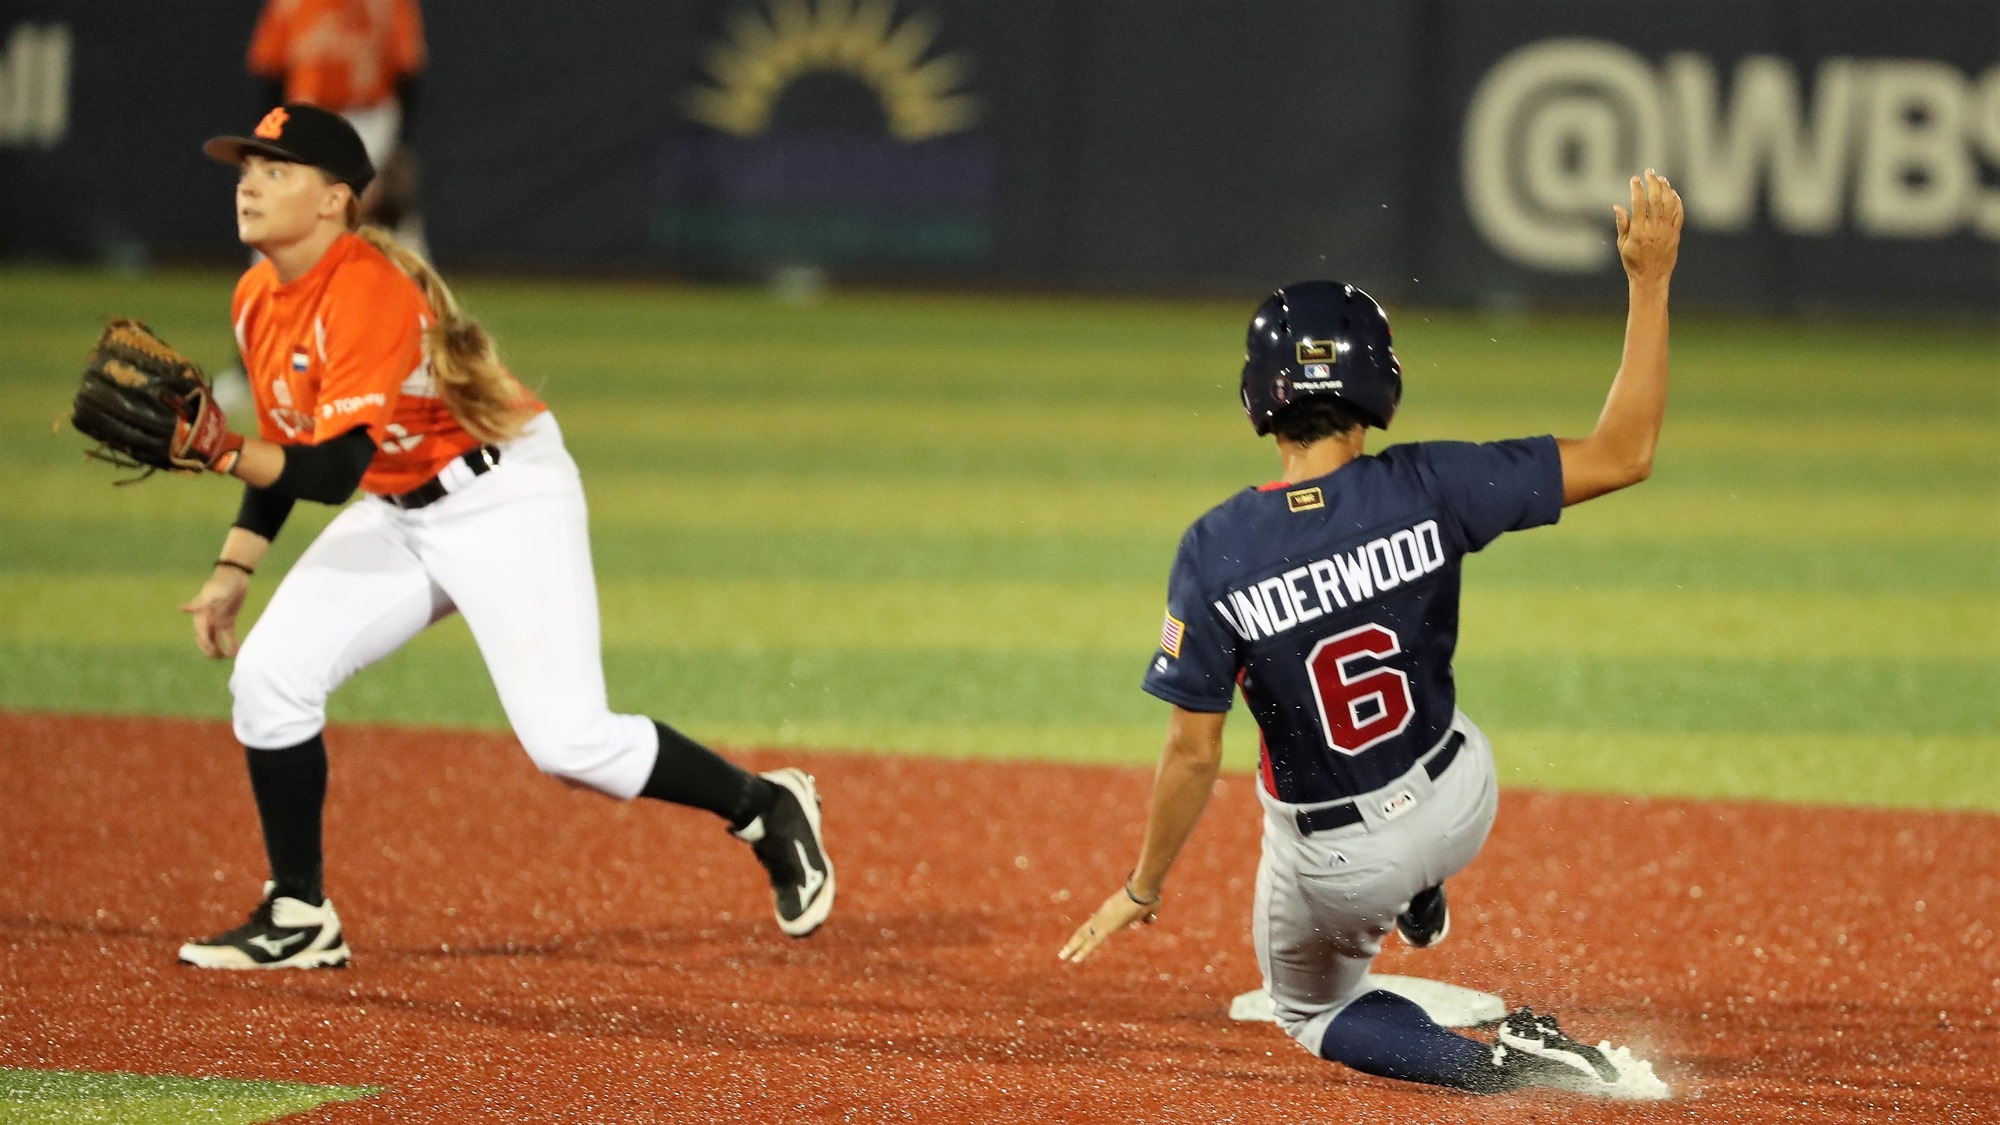 Malaika Underwood slides into second, Isabelle Markies fields